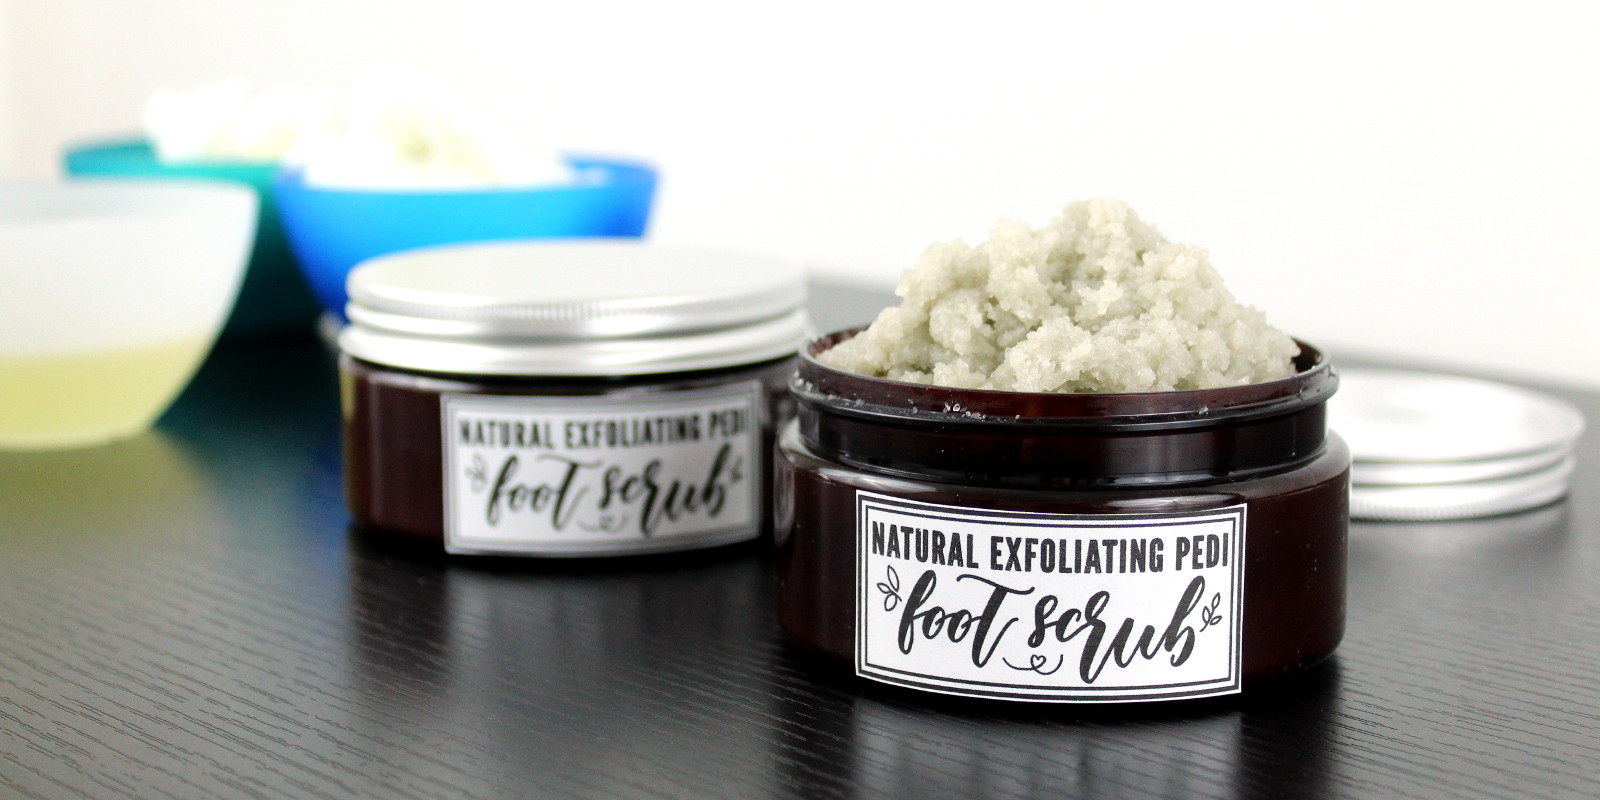 Pedi Foot Scrub Recipe with Coconut Oil. Natural foot care recipe for healthy looking skin. This super exfoliating pedi foot scrub recipe with coconut oil will leave your feet feeling like you just had a professional spa pedicure! Made with all natural ingredients, this pedi foot scrub DIY exfoliates with fine sea salt and pumice. It then hydrates skin with shea butter and coconut oil for softer, smoother feet with every use! A natural clean beauty recipe for your natural skin care routine.